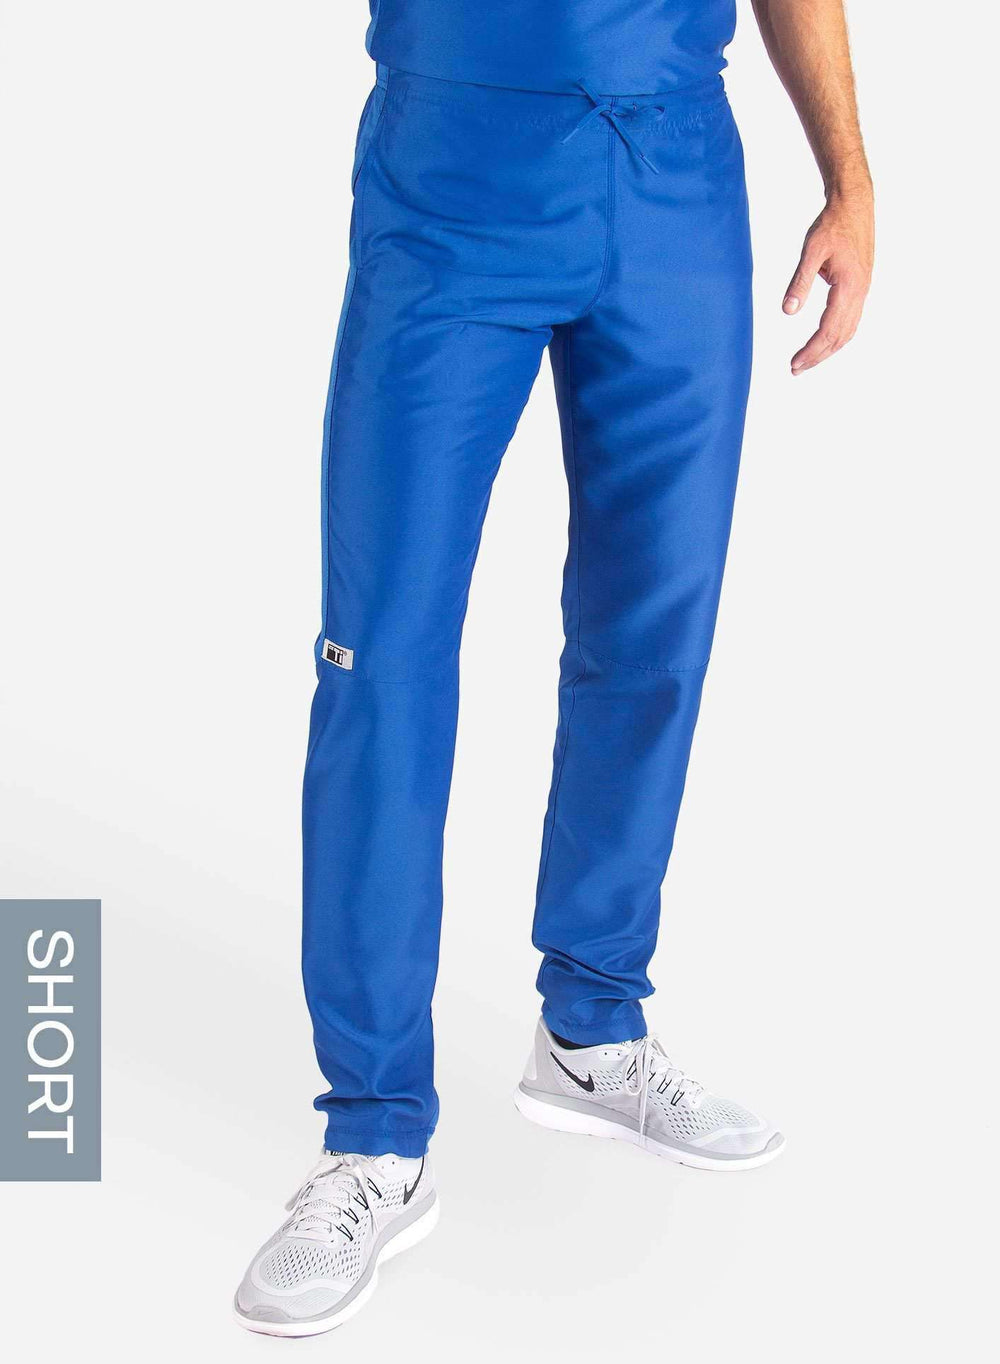 Men's Short Slim Fit Scrub Pants in Royal Blue